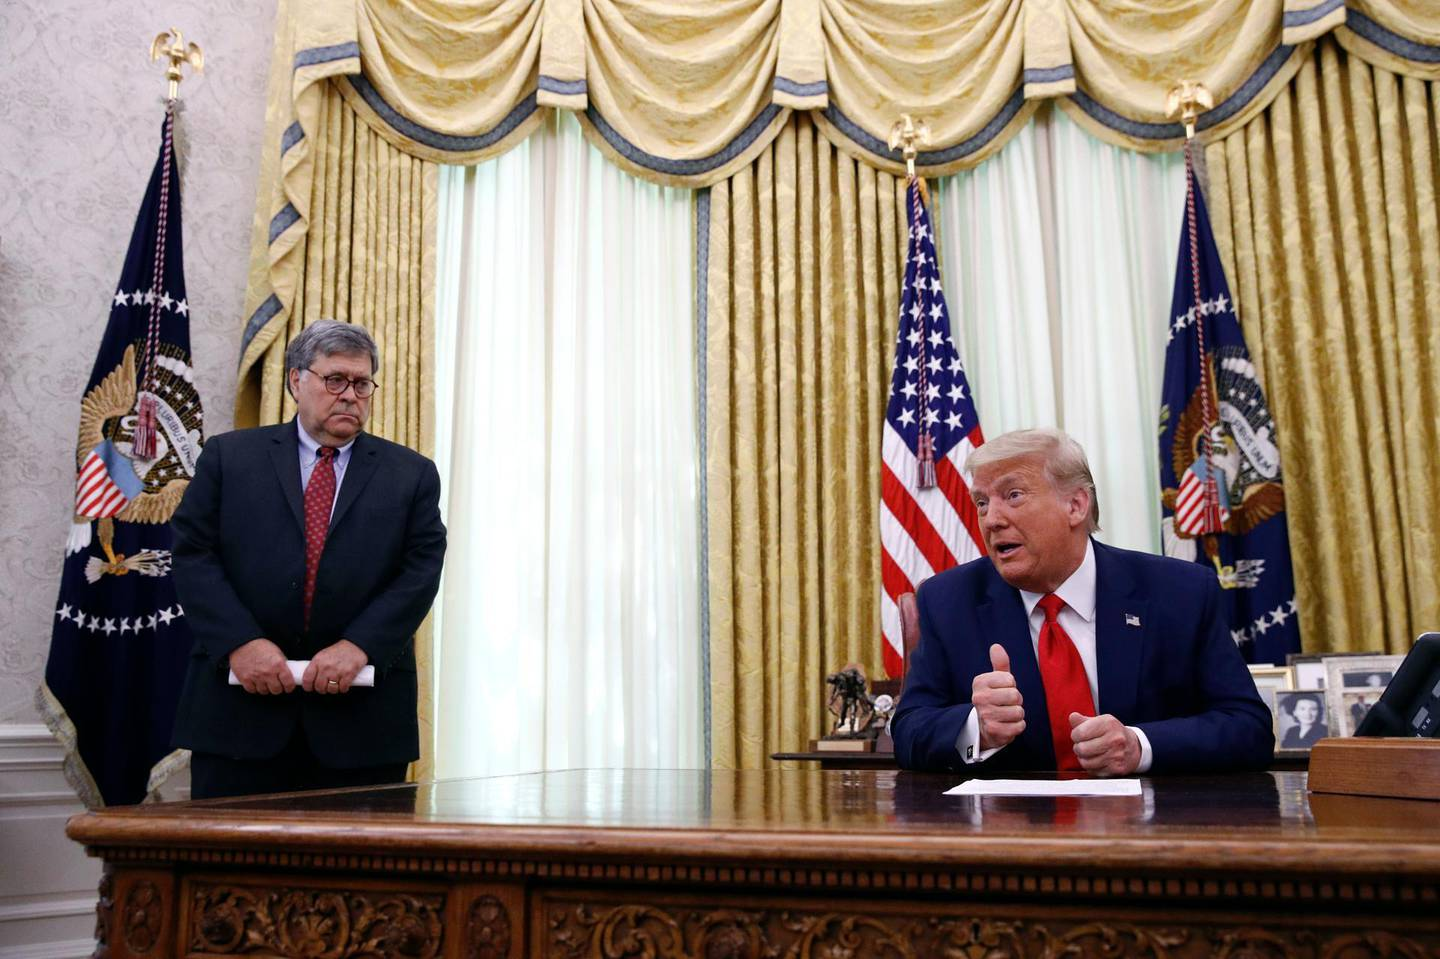 FILE - In this June 15, 2020, file photo President Donald Trump speaks alongside Attorney General William Barr during a law enforcement briefing on the MS-13 gang in the Oval Office of the White House in Washington. Barr is scheduled to appear for the first time before the House Judiciary Committeeon Tuesday, July 28.  (AP Photo/Patrick Semansky, File)